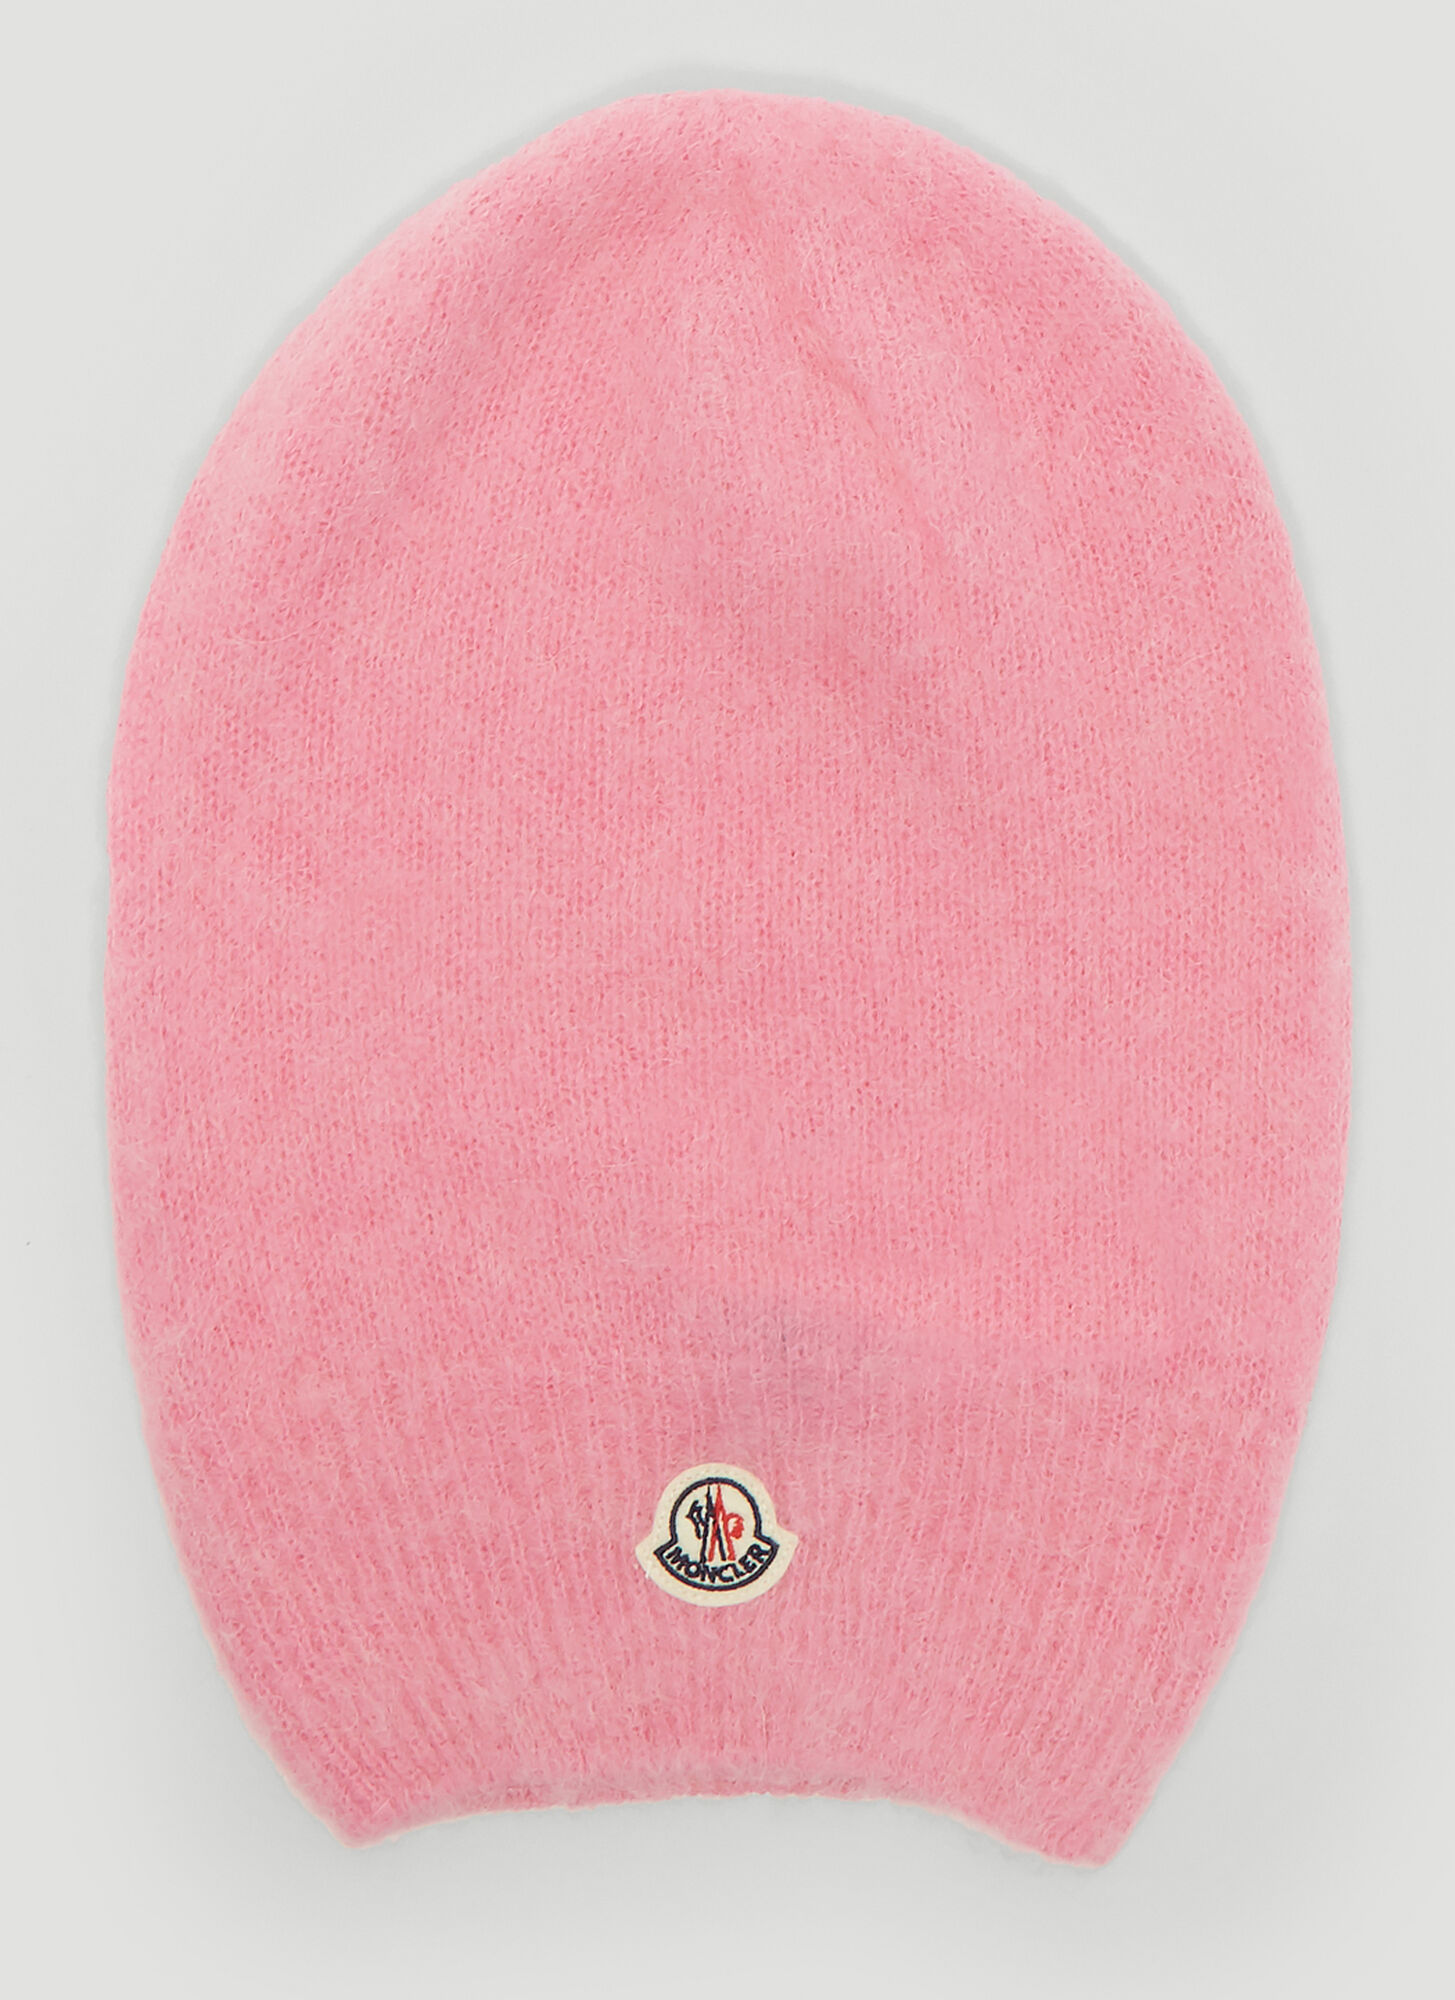 Photo of Moncler Tricot Knitted Beanie Hat in Pink - Moncler Hats